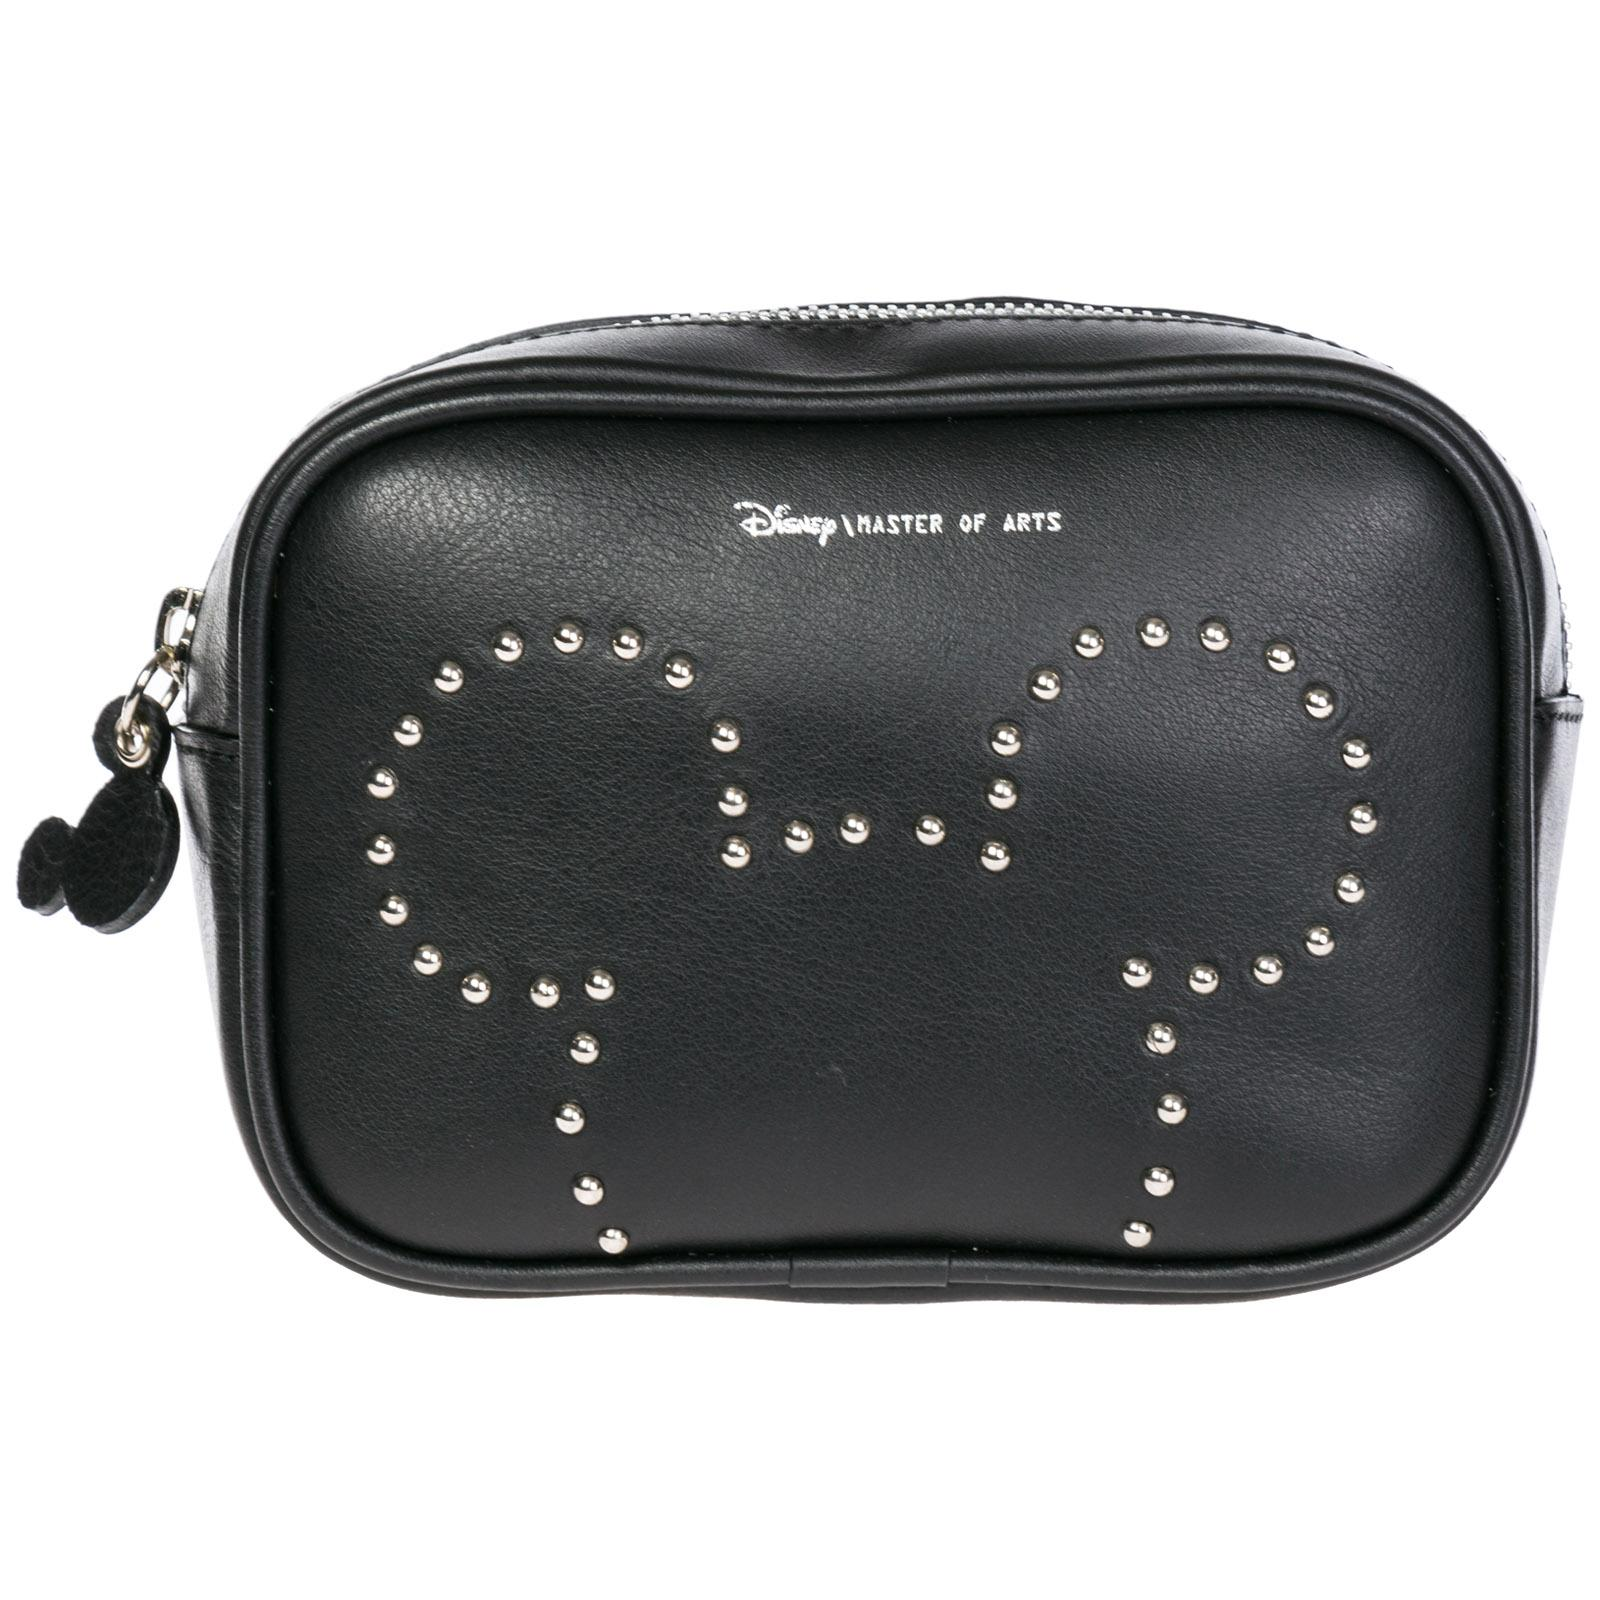 887457342b17 Moa Master Of Arts Women's Leather Belt Bum Bag Hip Pouch Disney Mickey  Mouse In Black